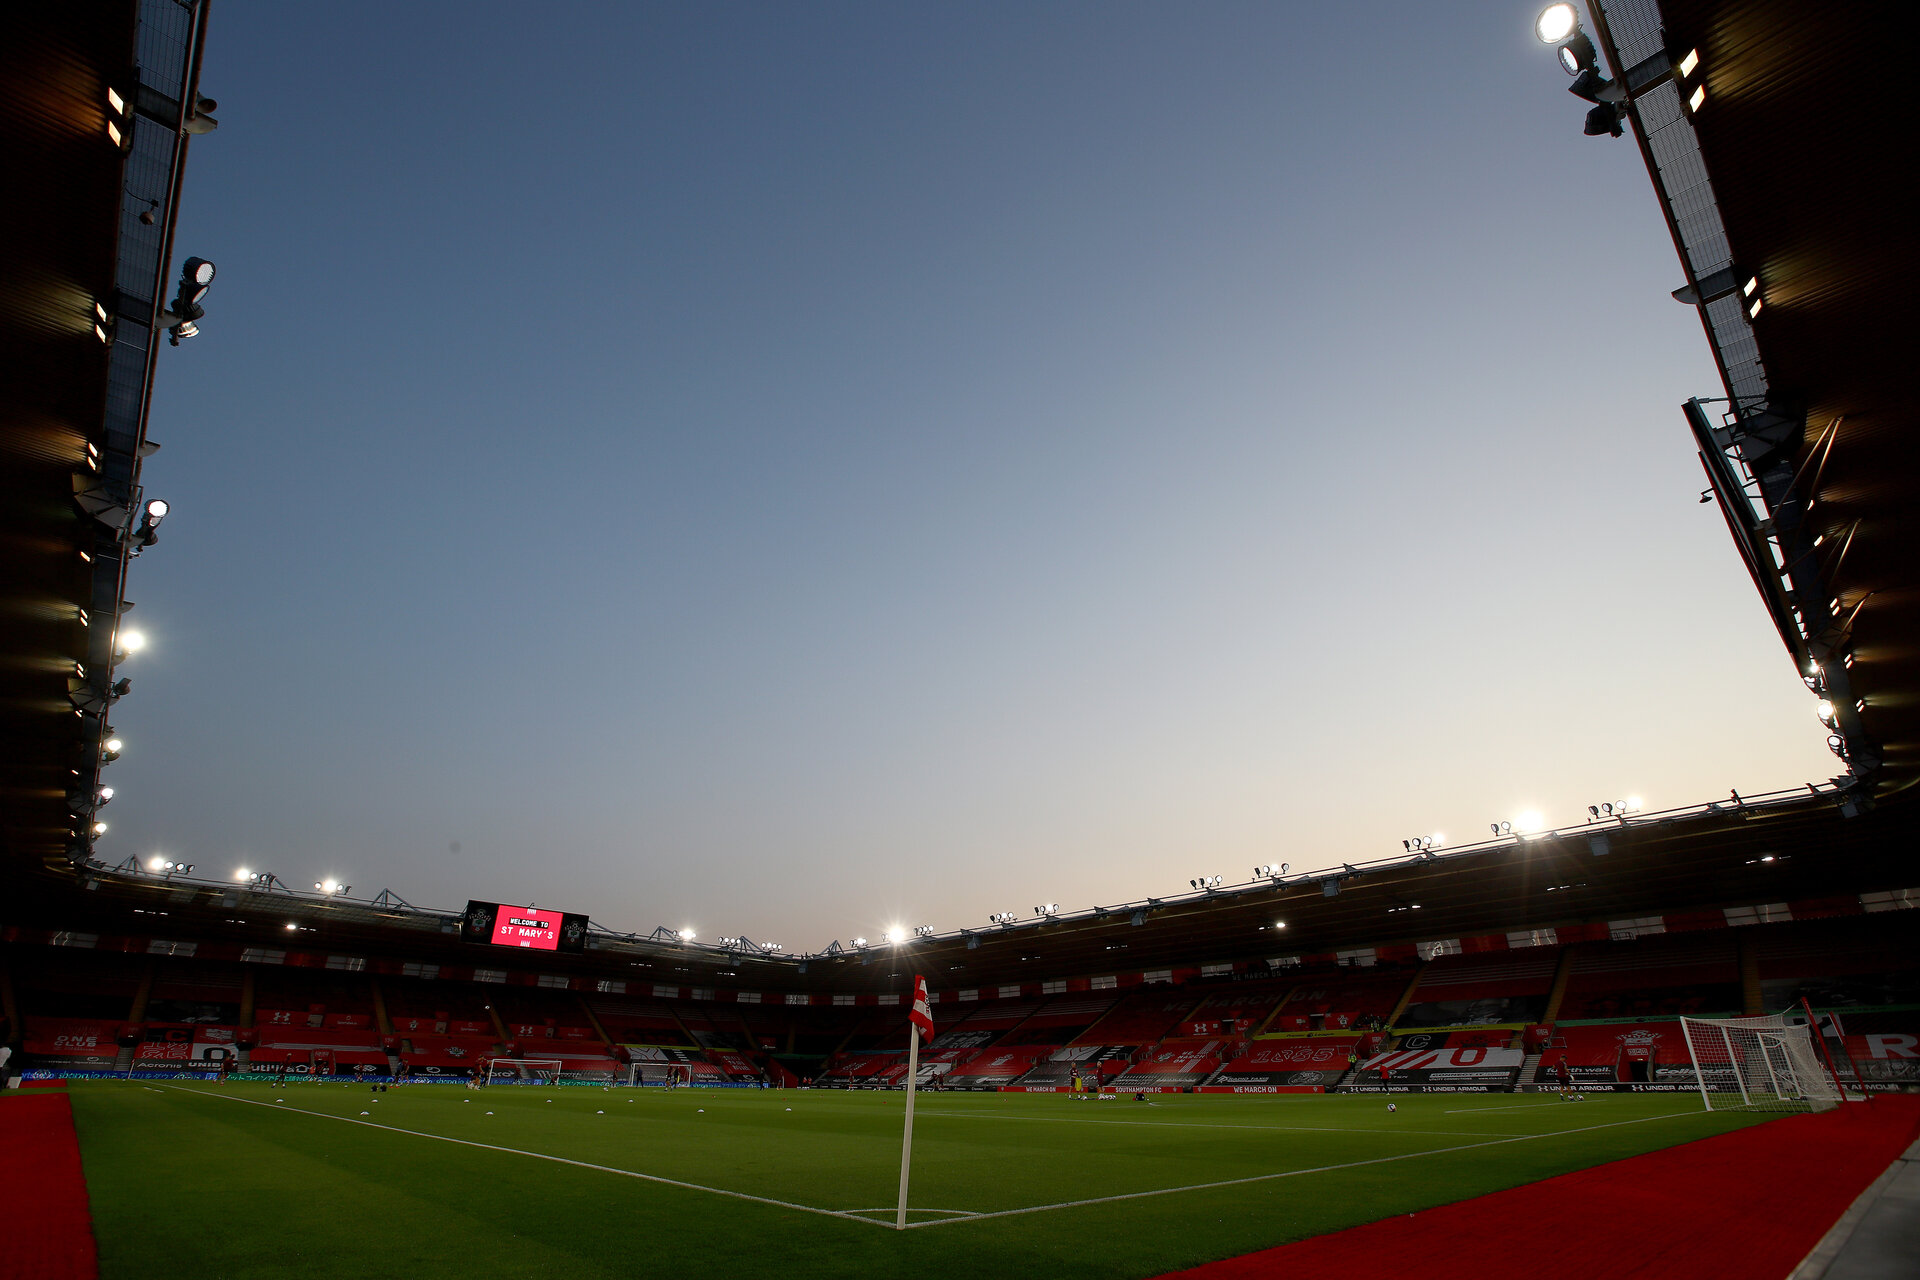 SOUTHAMPTON, ENGLAND - SEPTEMBER 16: A general view ahead of the Carabao Cup 2nd round match between Southampton FC and Brentford FC, at St. Mary's Stadium on September 16, 2020 in Southampton, England. (Photo by Matt Watson/Southampton FC via Getty Images)